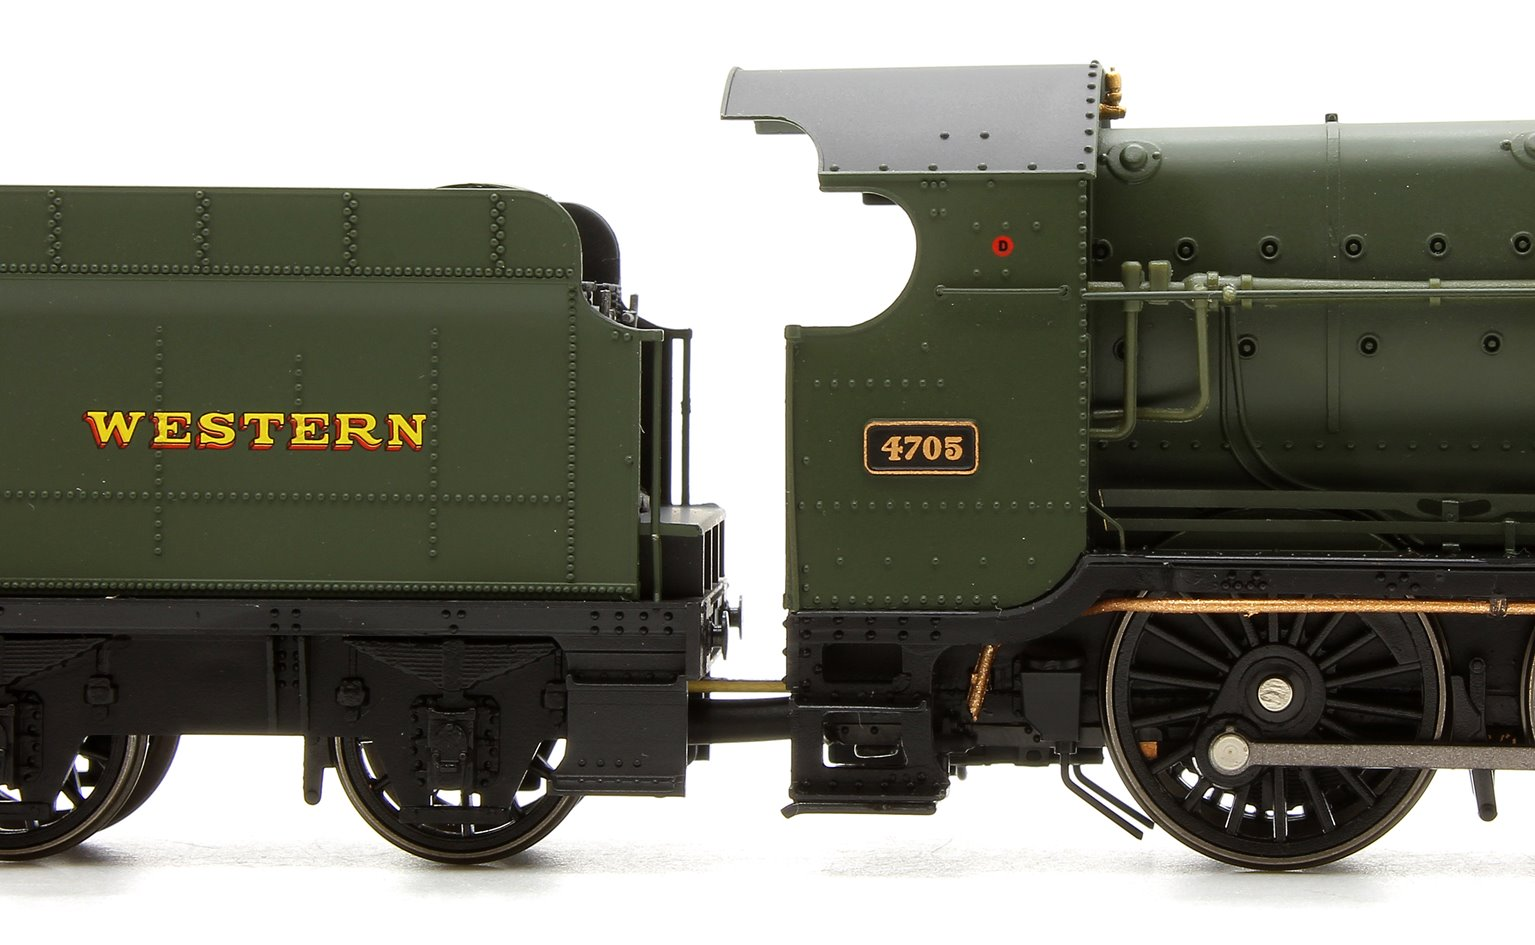 47XX Class Night Owl 2-8-0 Locomotive No.4705 in green with GREAT WESTERN lettering